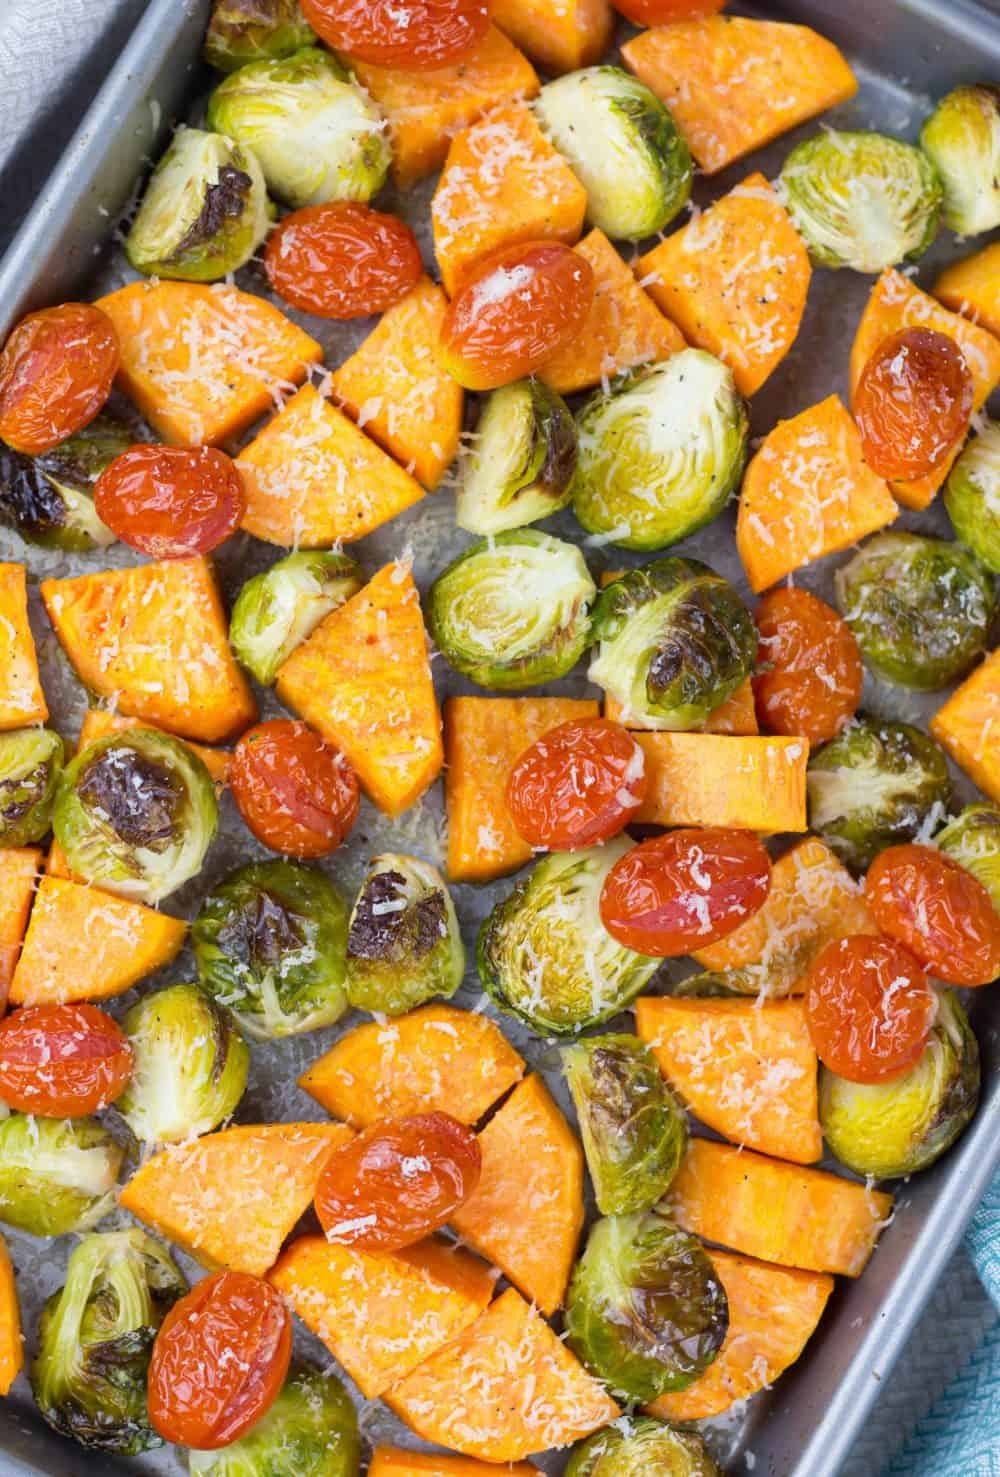 Roasted Brussel Sprouts, Sweet potato, and Cherry Tomatoes is a great vegetarian side dish recipe for any occasion. Quick and easy dinner can be nutritious and delicious!